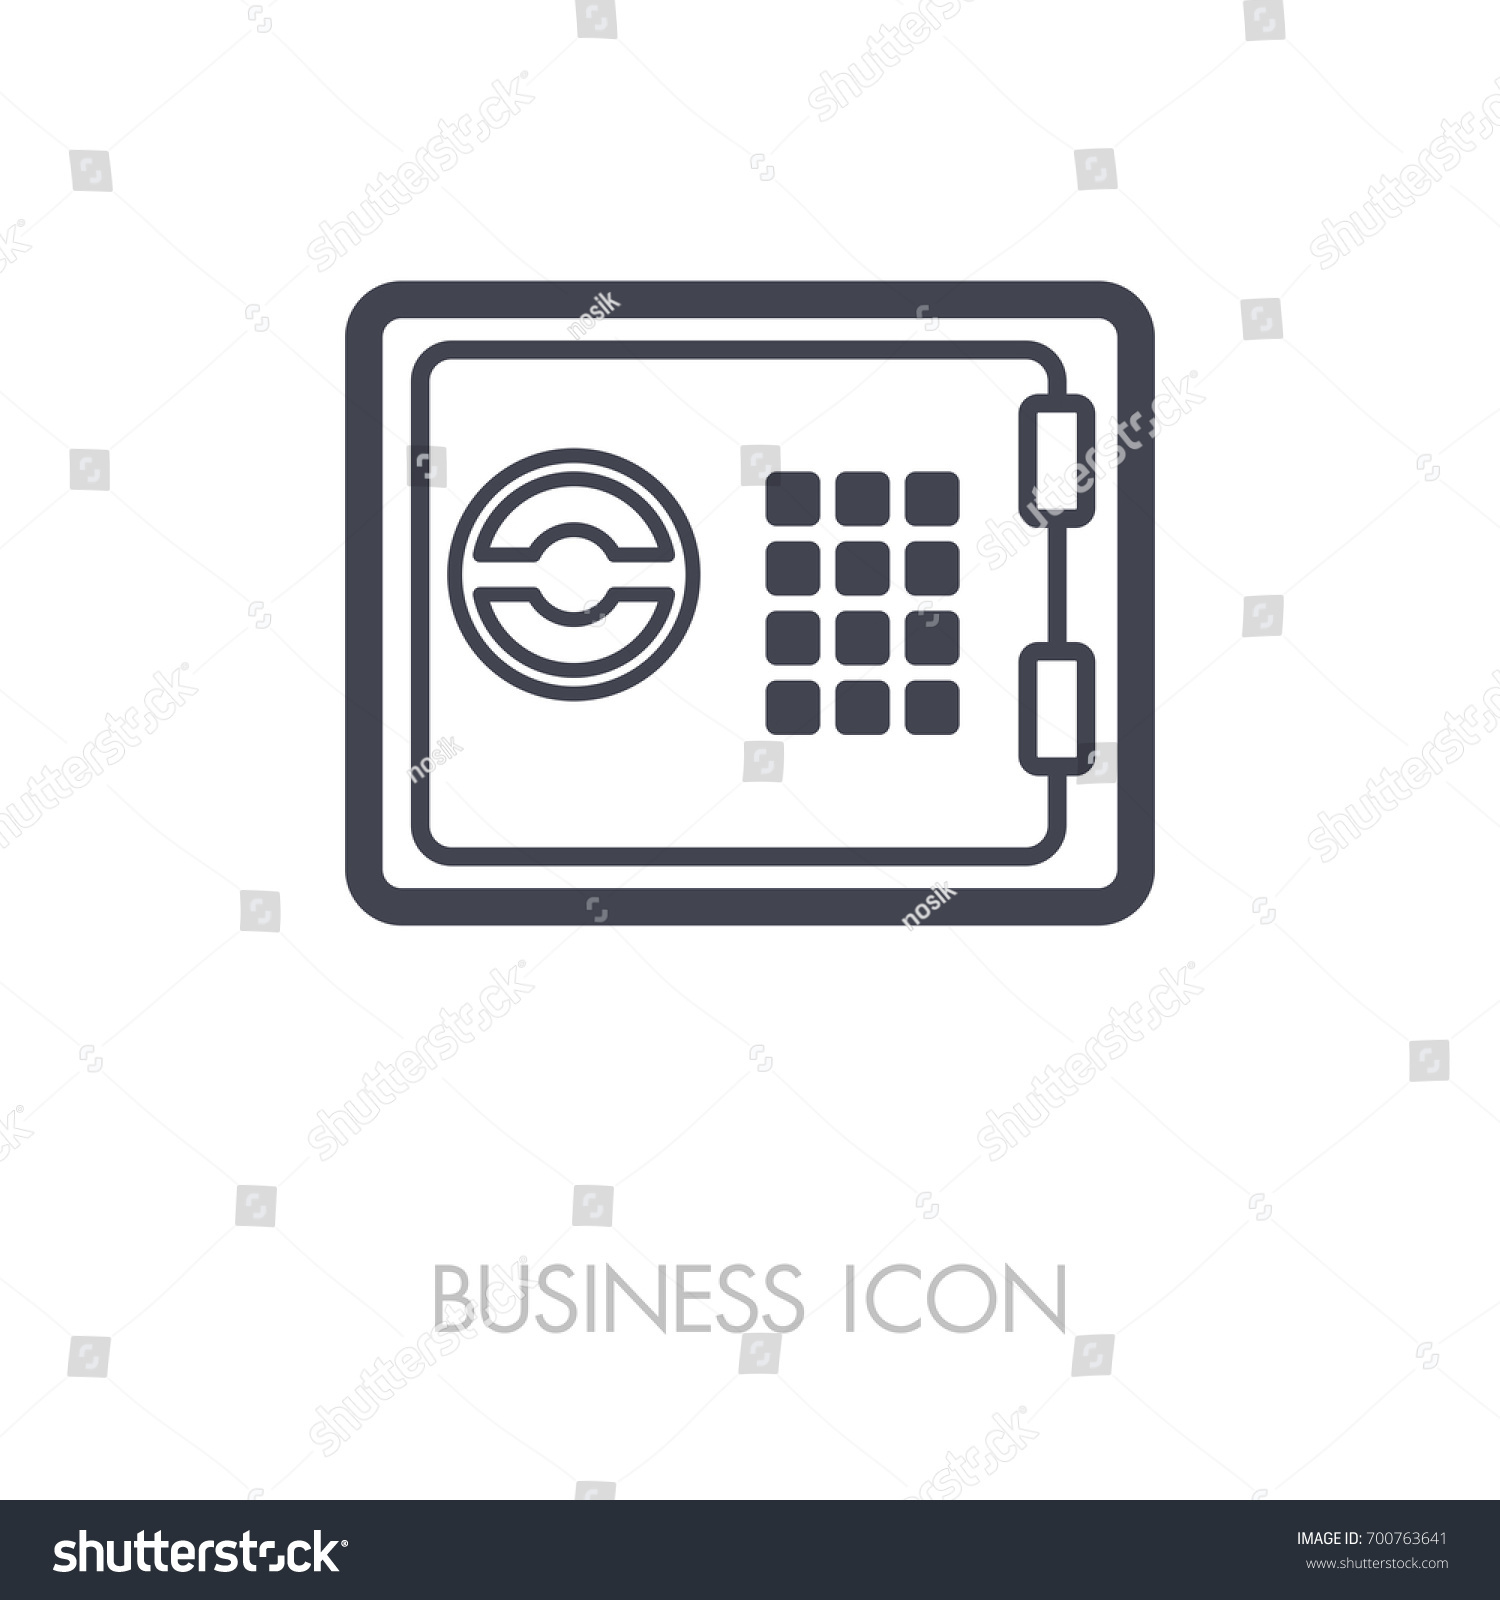 Bank safe outline icon finances sign stock vector 700763641 bank safe outline icon finances sign graph symbol for your web site design biocorpaavc Gallery